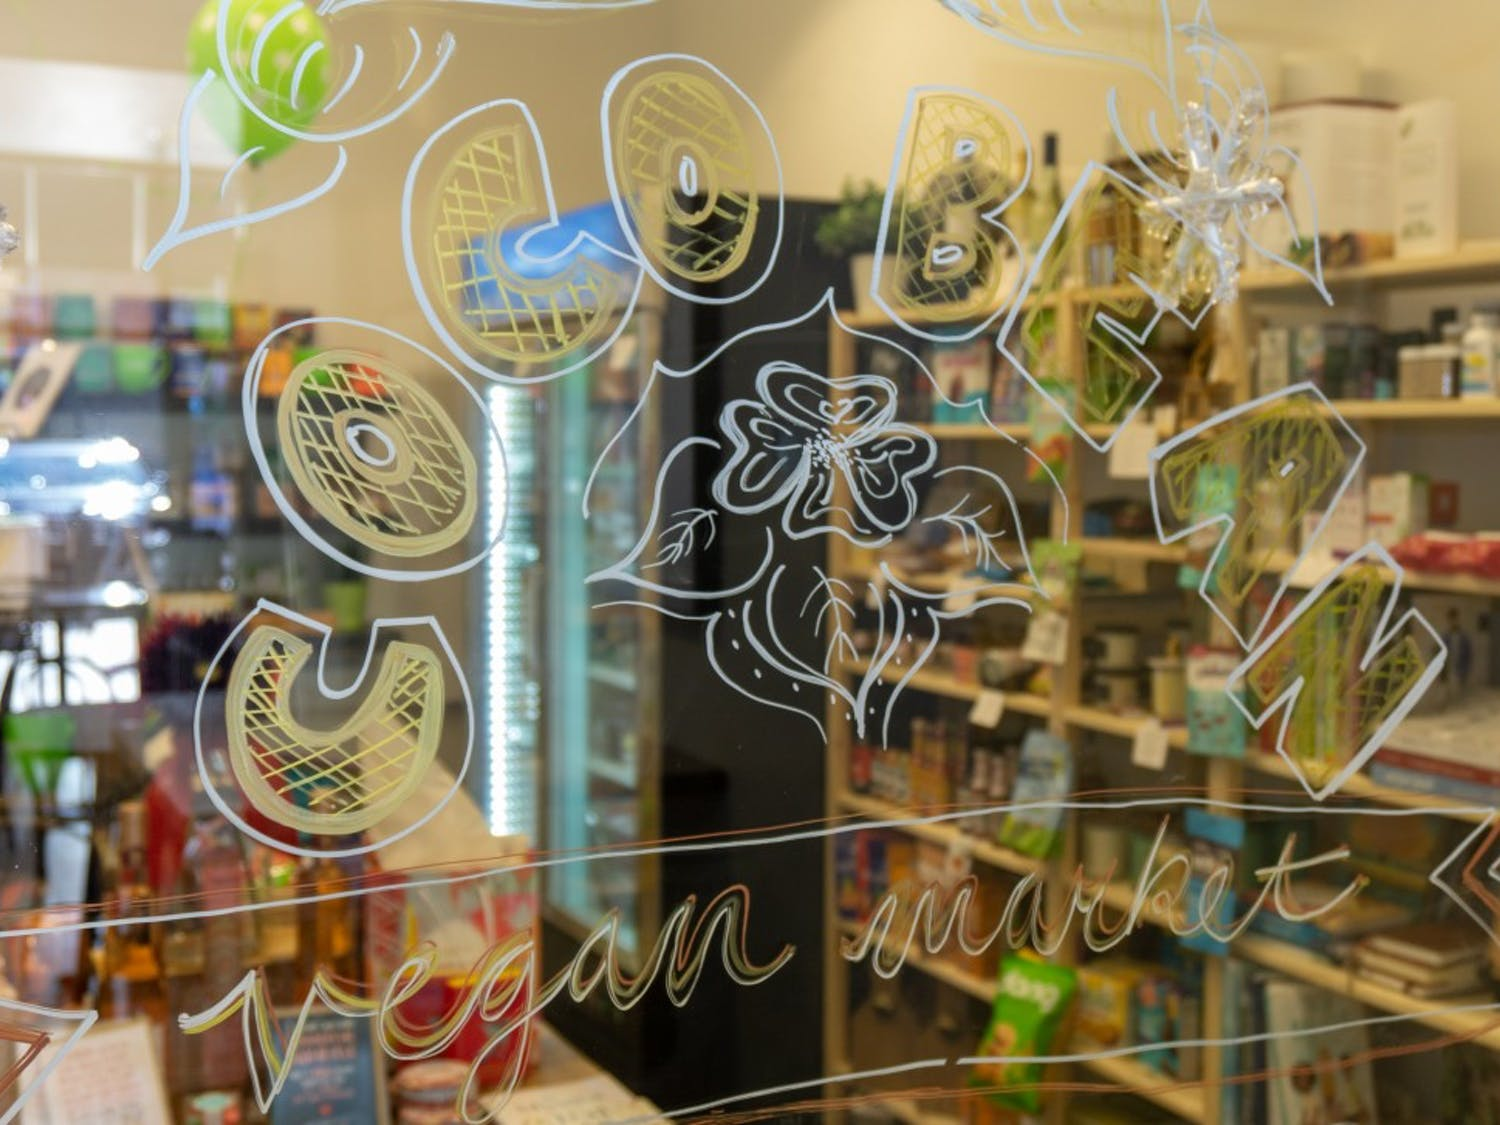 Tamara Lackey opened the Coco Bean Vegan Market, at1114 Environ Way,  as a one-stop shop for customers to buy products marked as vegan-friendly.